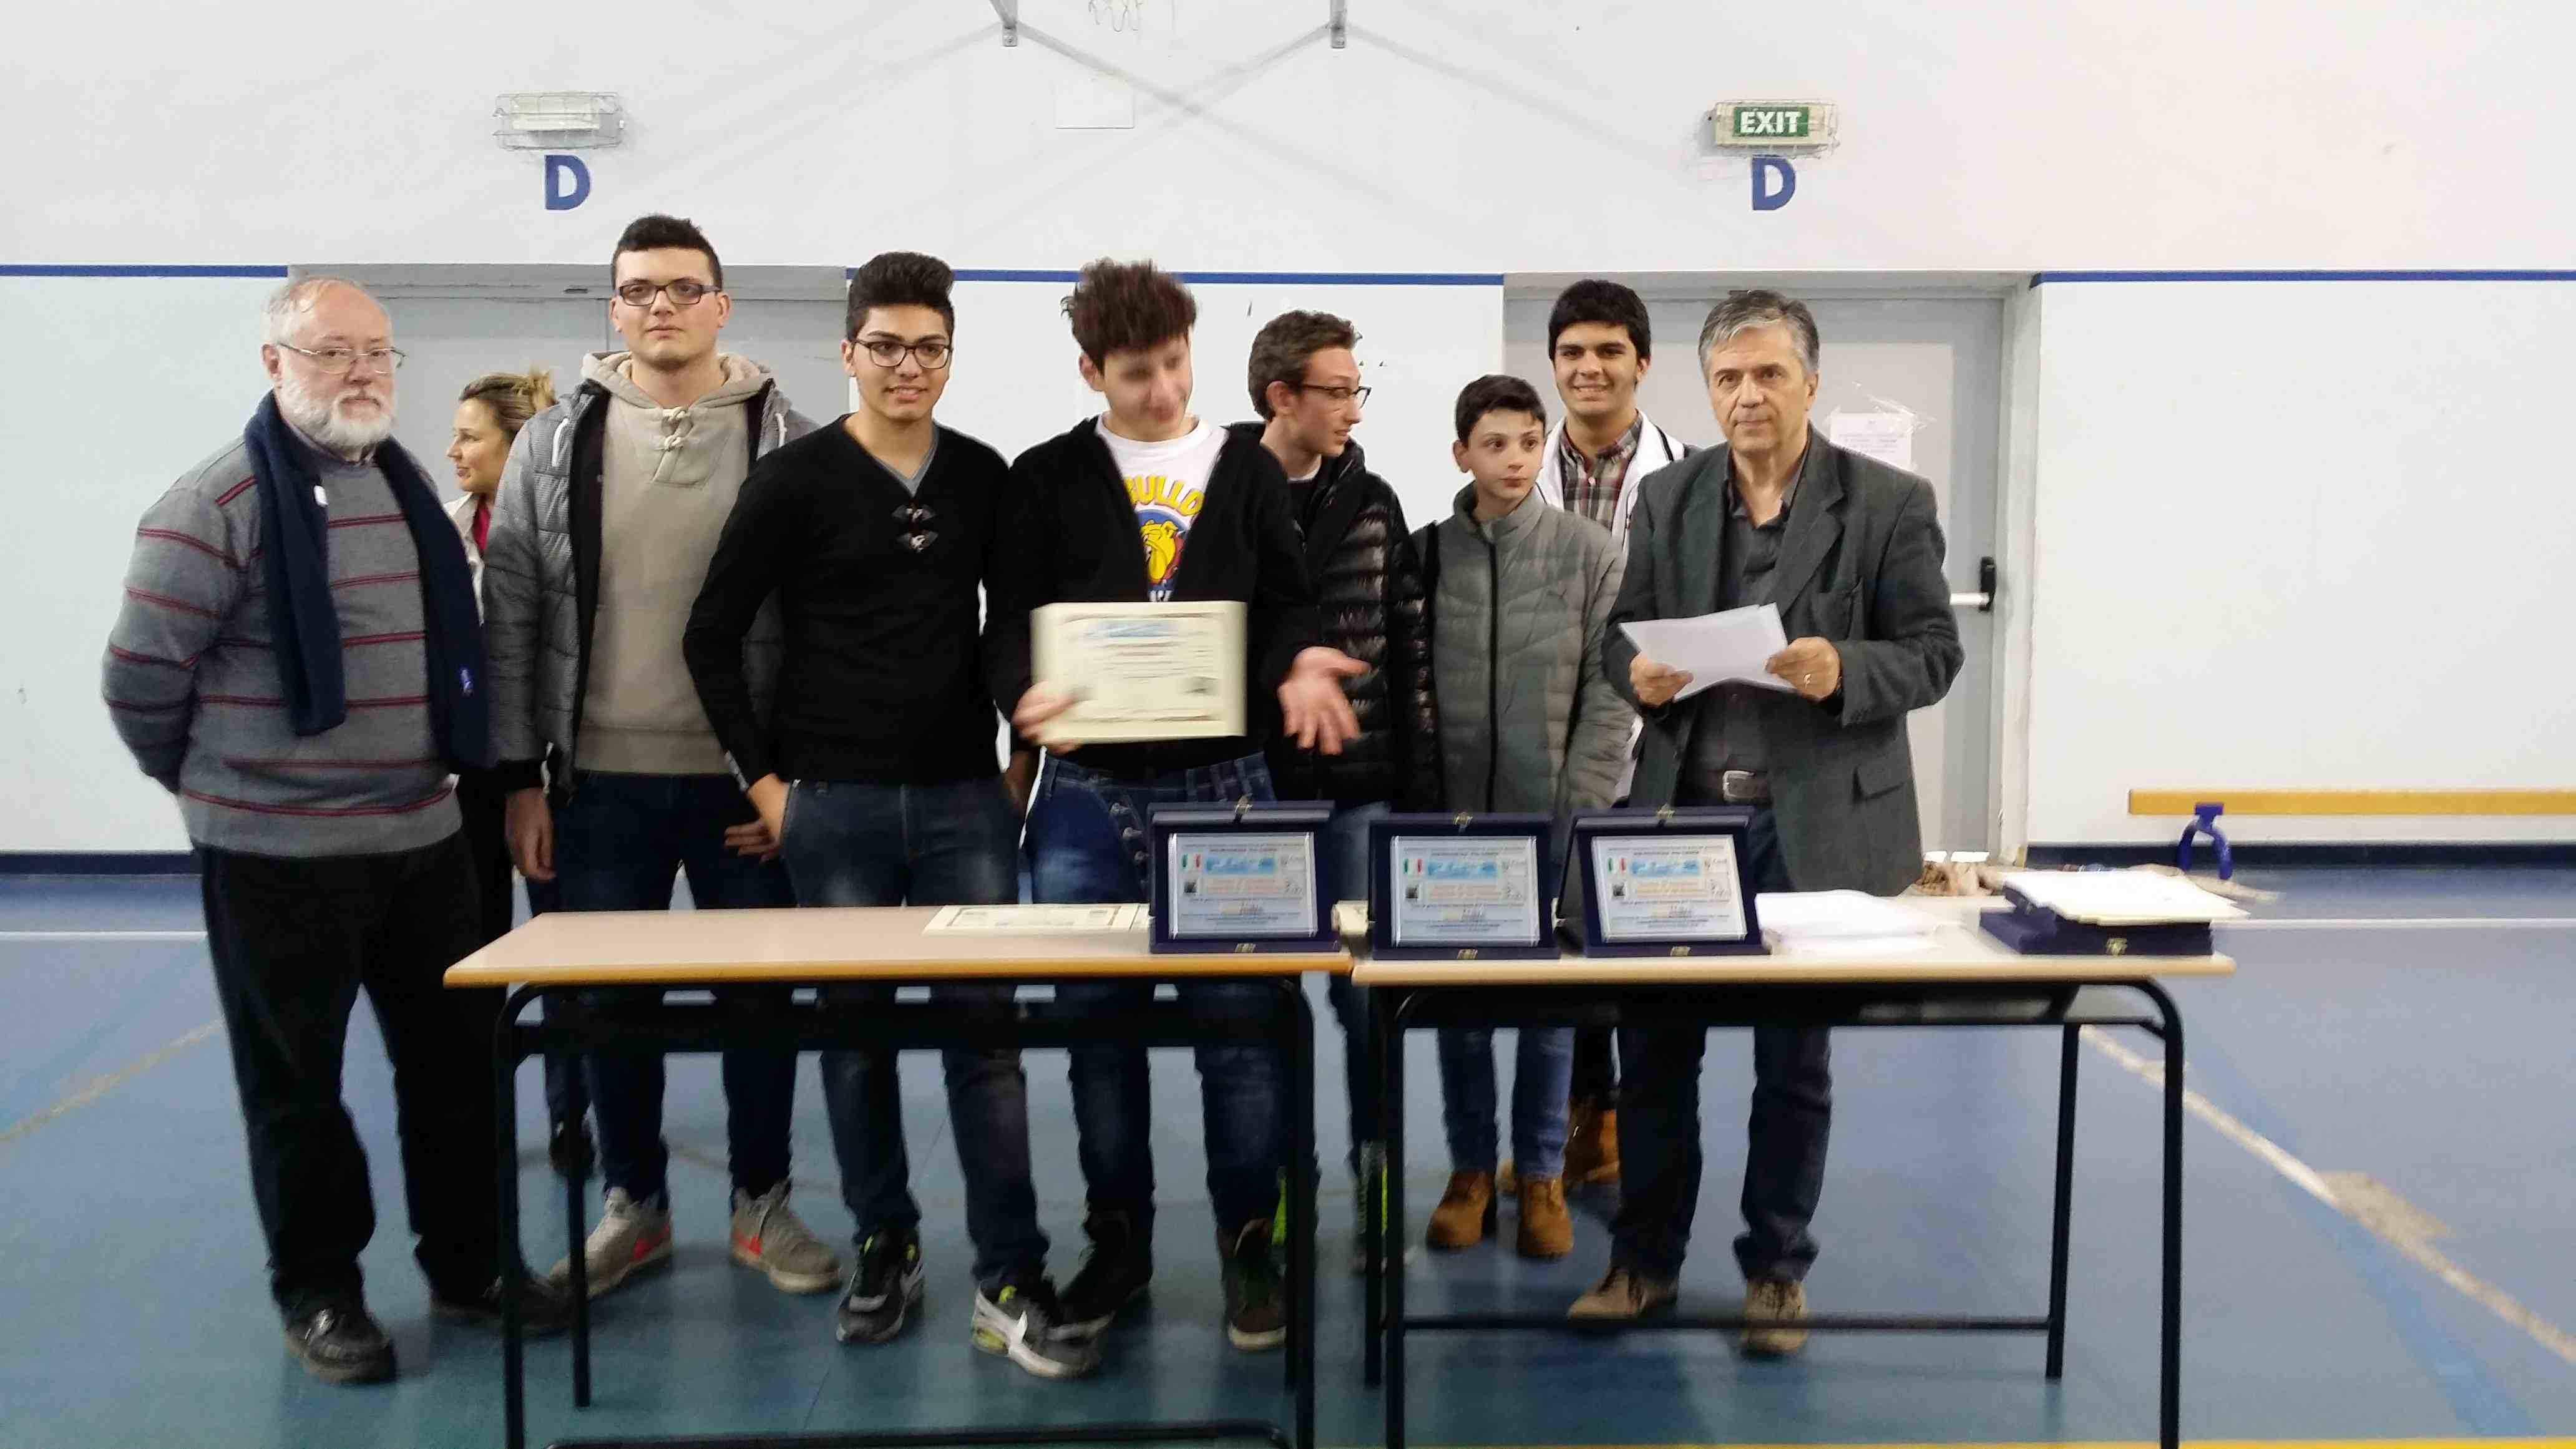 2° Classificata Liceo Scientifico PIZZI Cat. Sec. I° Allievi CAPUA